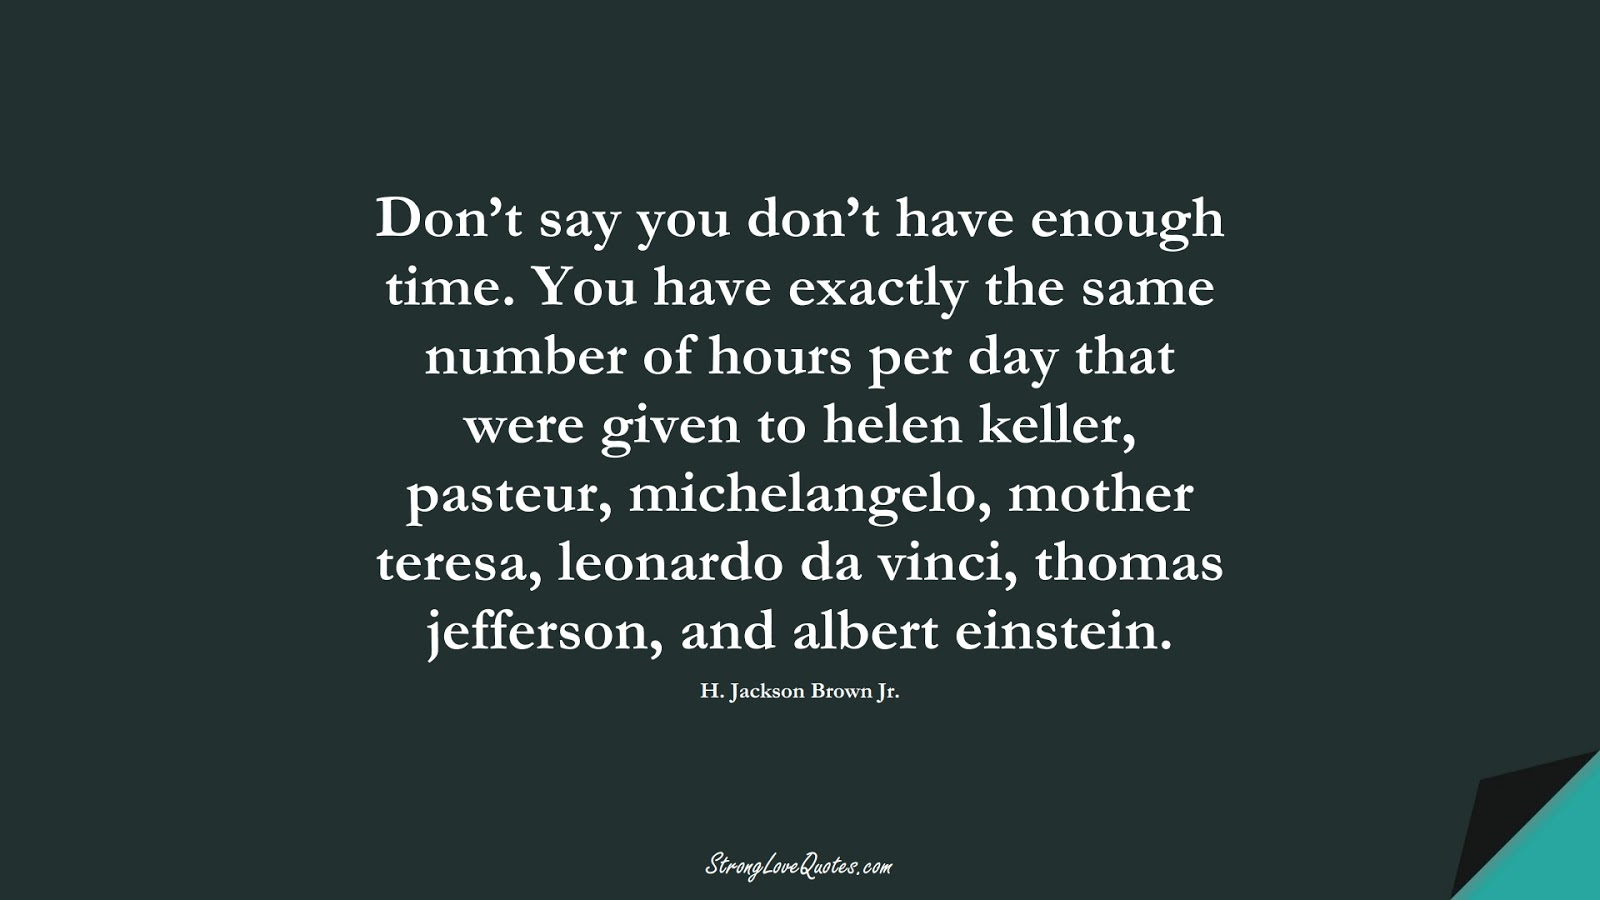 Don't say you don't have enough time. You have exactly the same number of hours per day that were given to helen keller, pasteur, michelangelo, mother teresa, leonardo da vinci, thomas jefferson, and albert einstein. (H. Jackson Brown Jr.);  #EducationQuotes